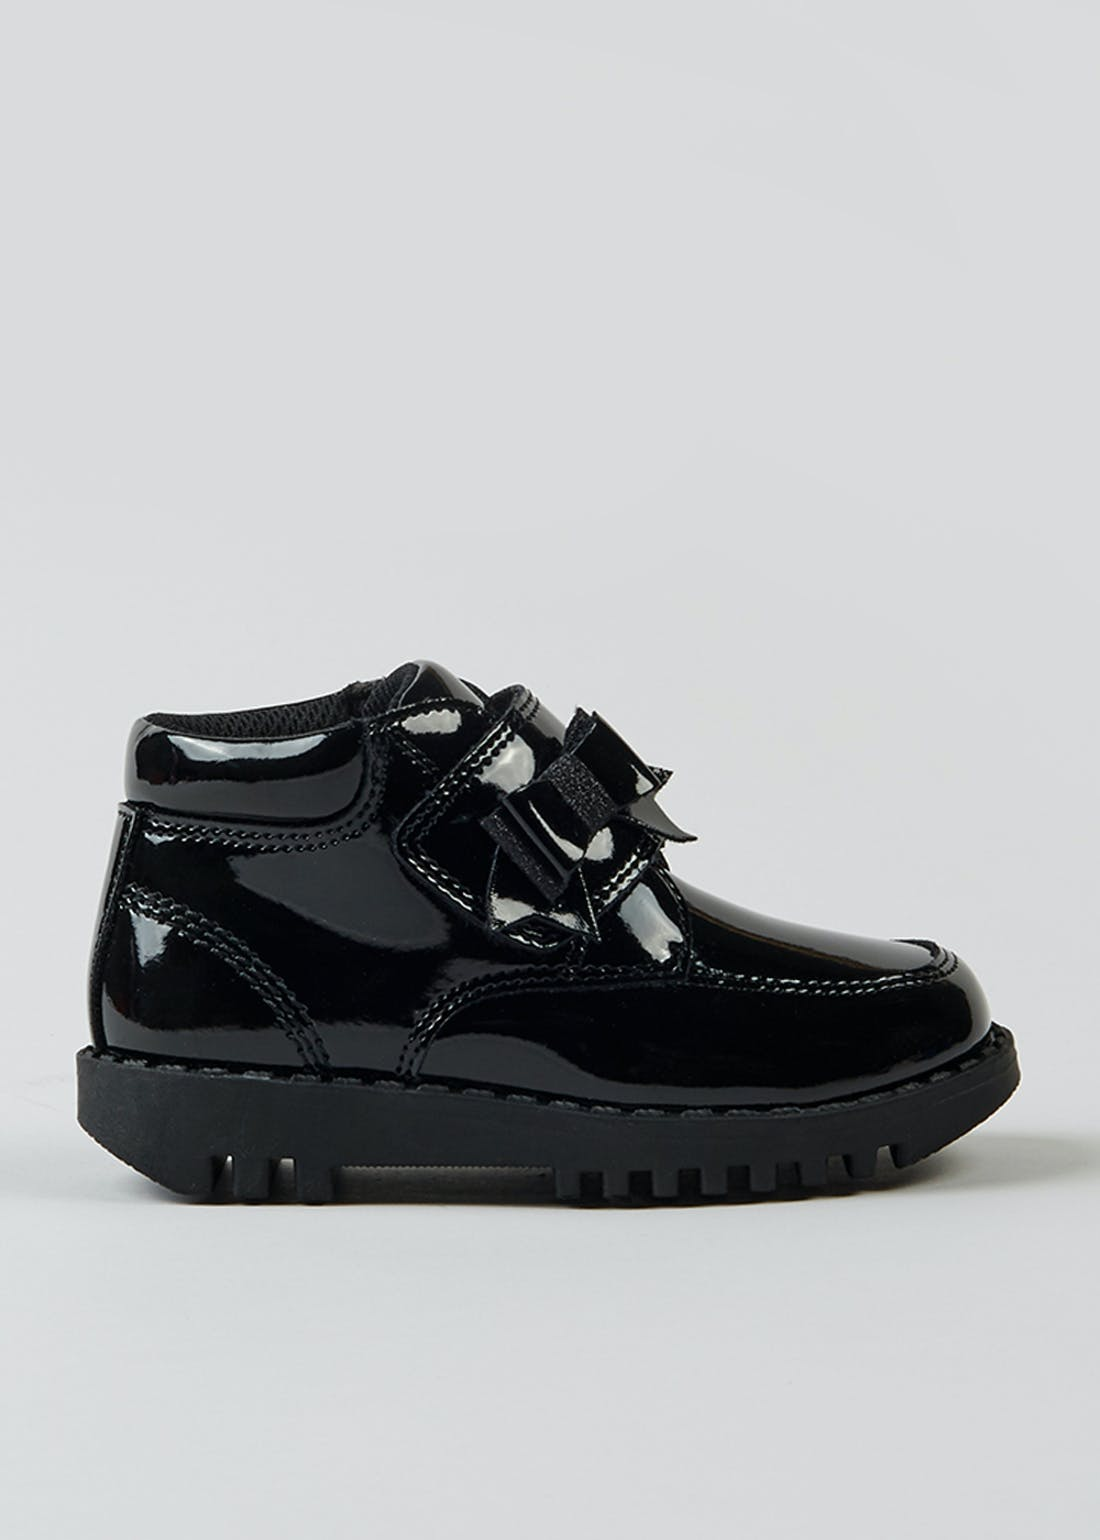 Girls Black Patent Ankle Boots (Younger 7-12)